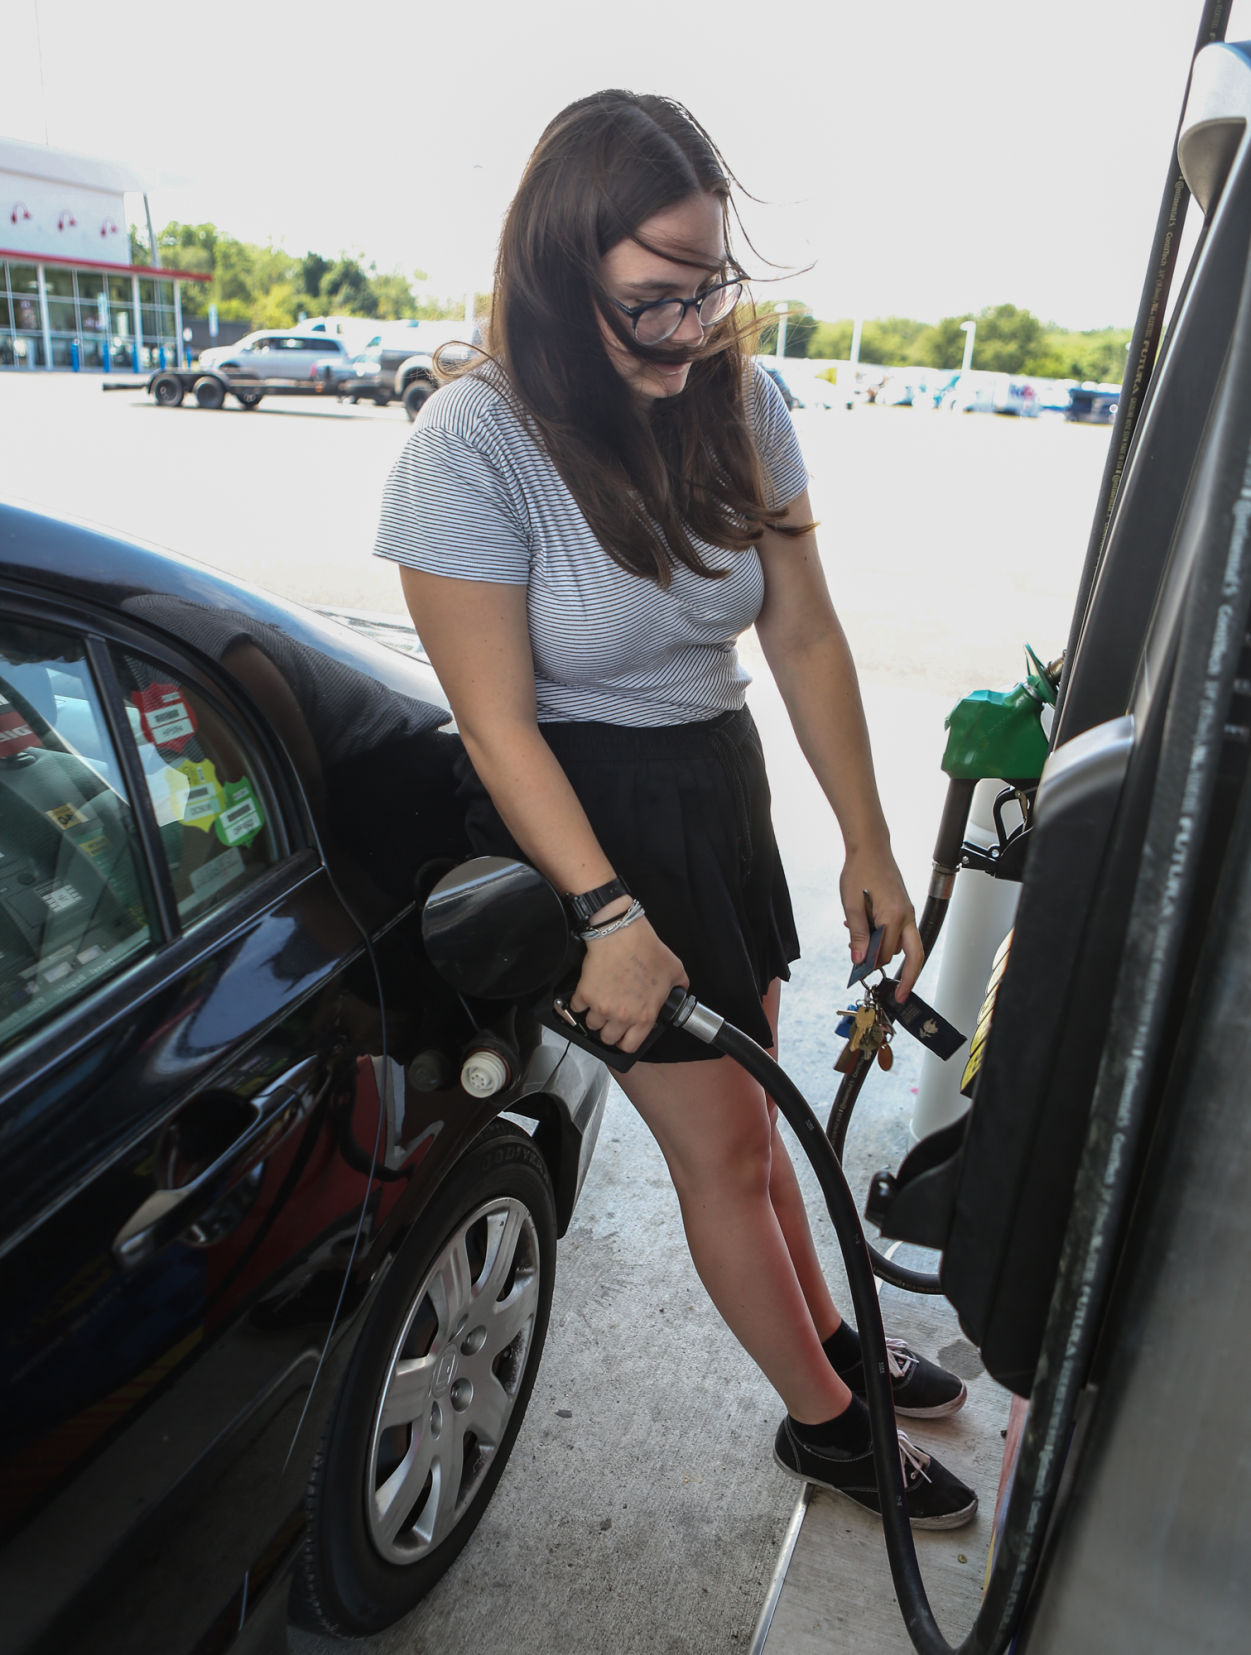 Hurricane Harvey affects gas prices travel plans